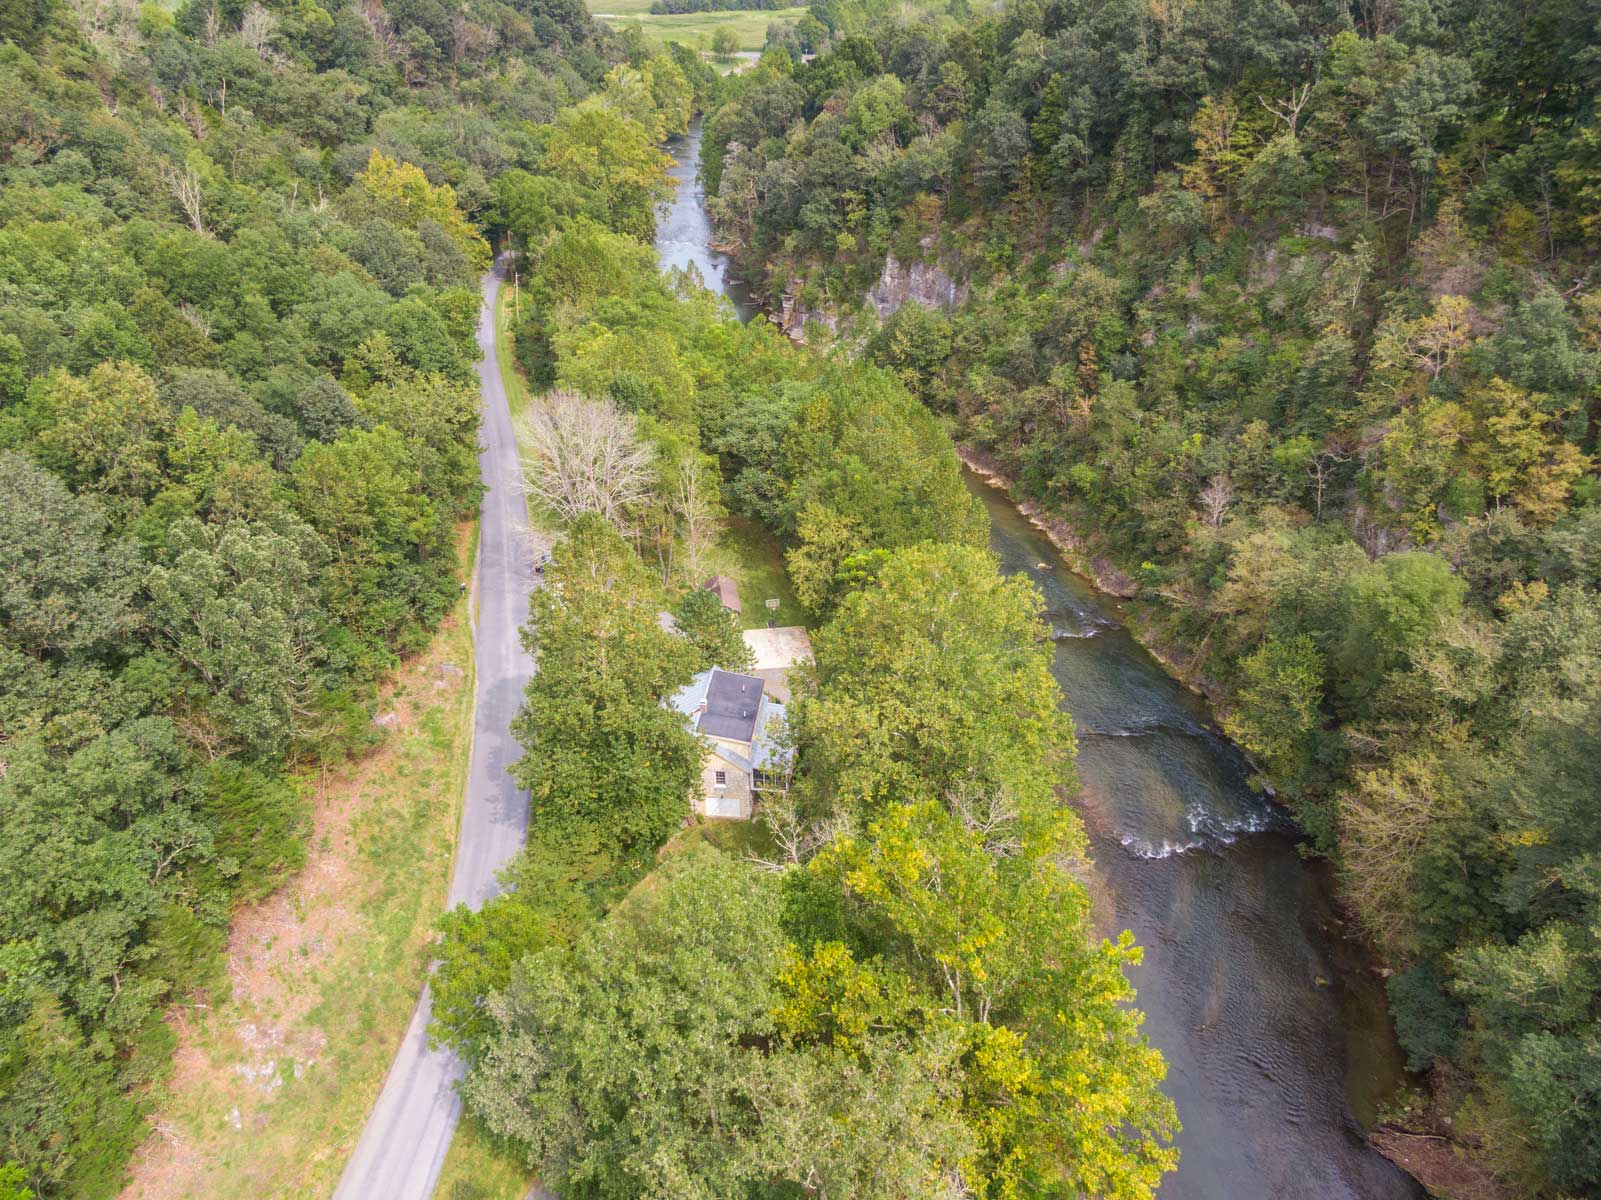 Riverfront retreat drone shot with view of house